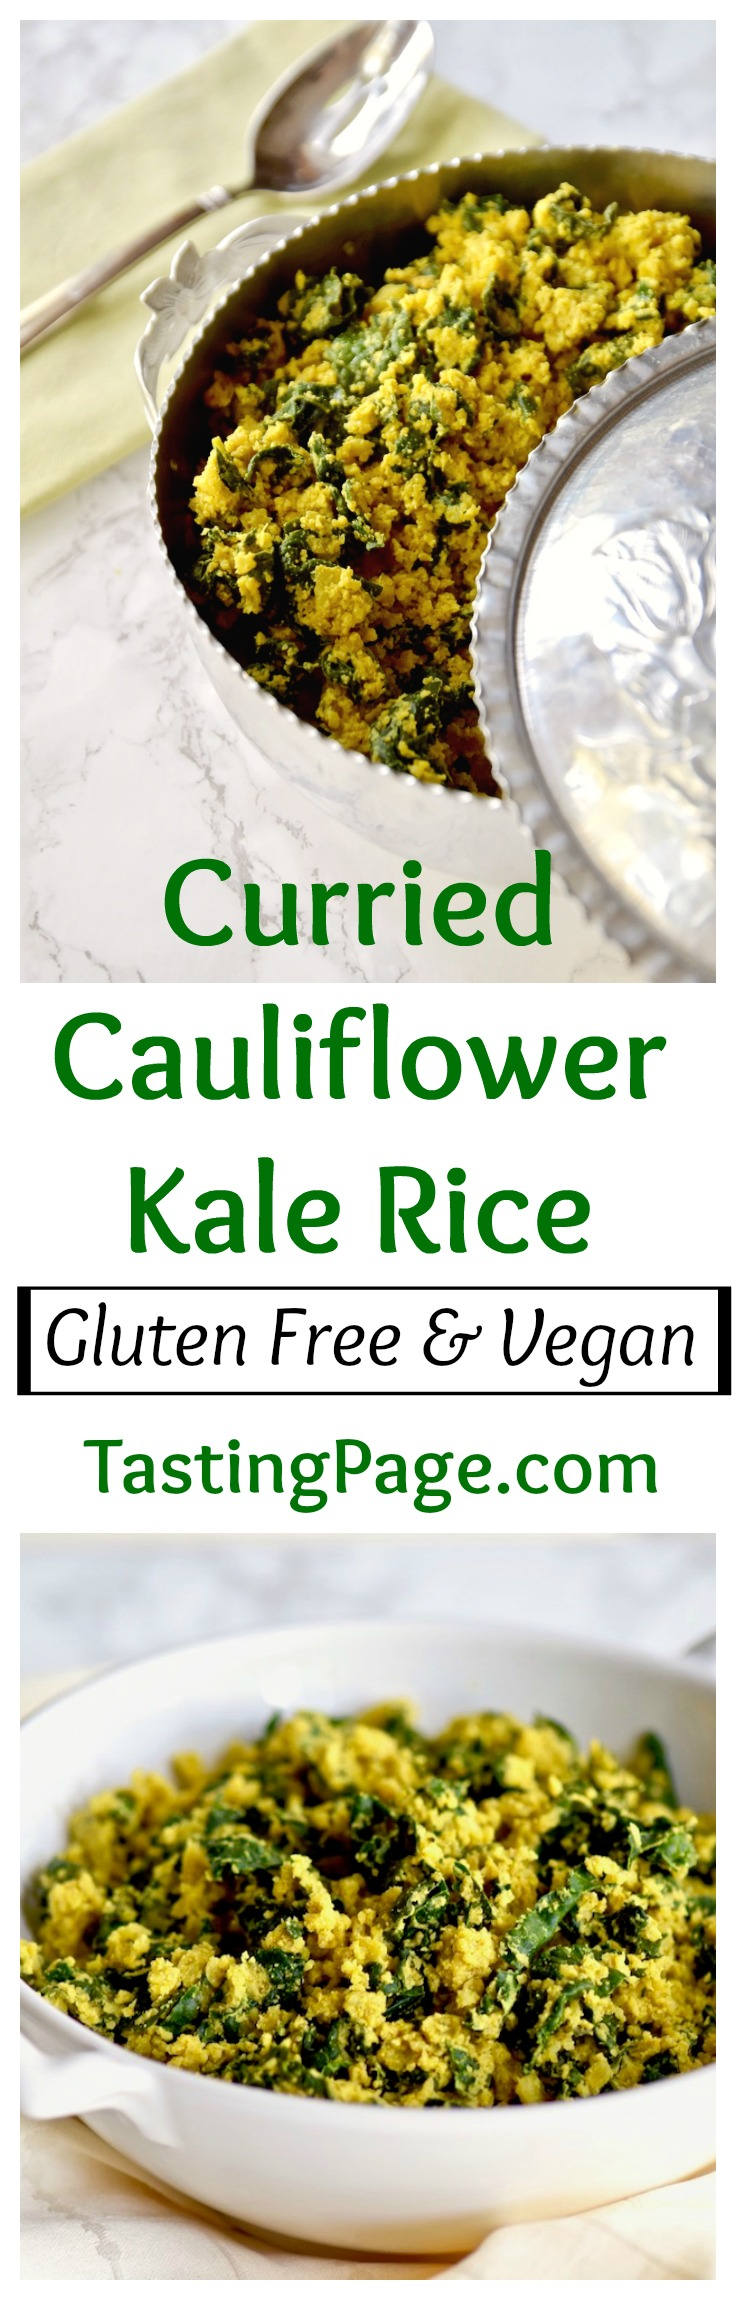 Curried cauliflower kale rice - gluten free, dairy free and vegan | TastingPage.com